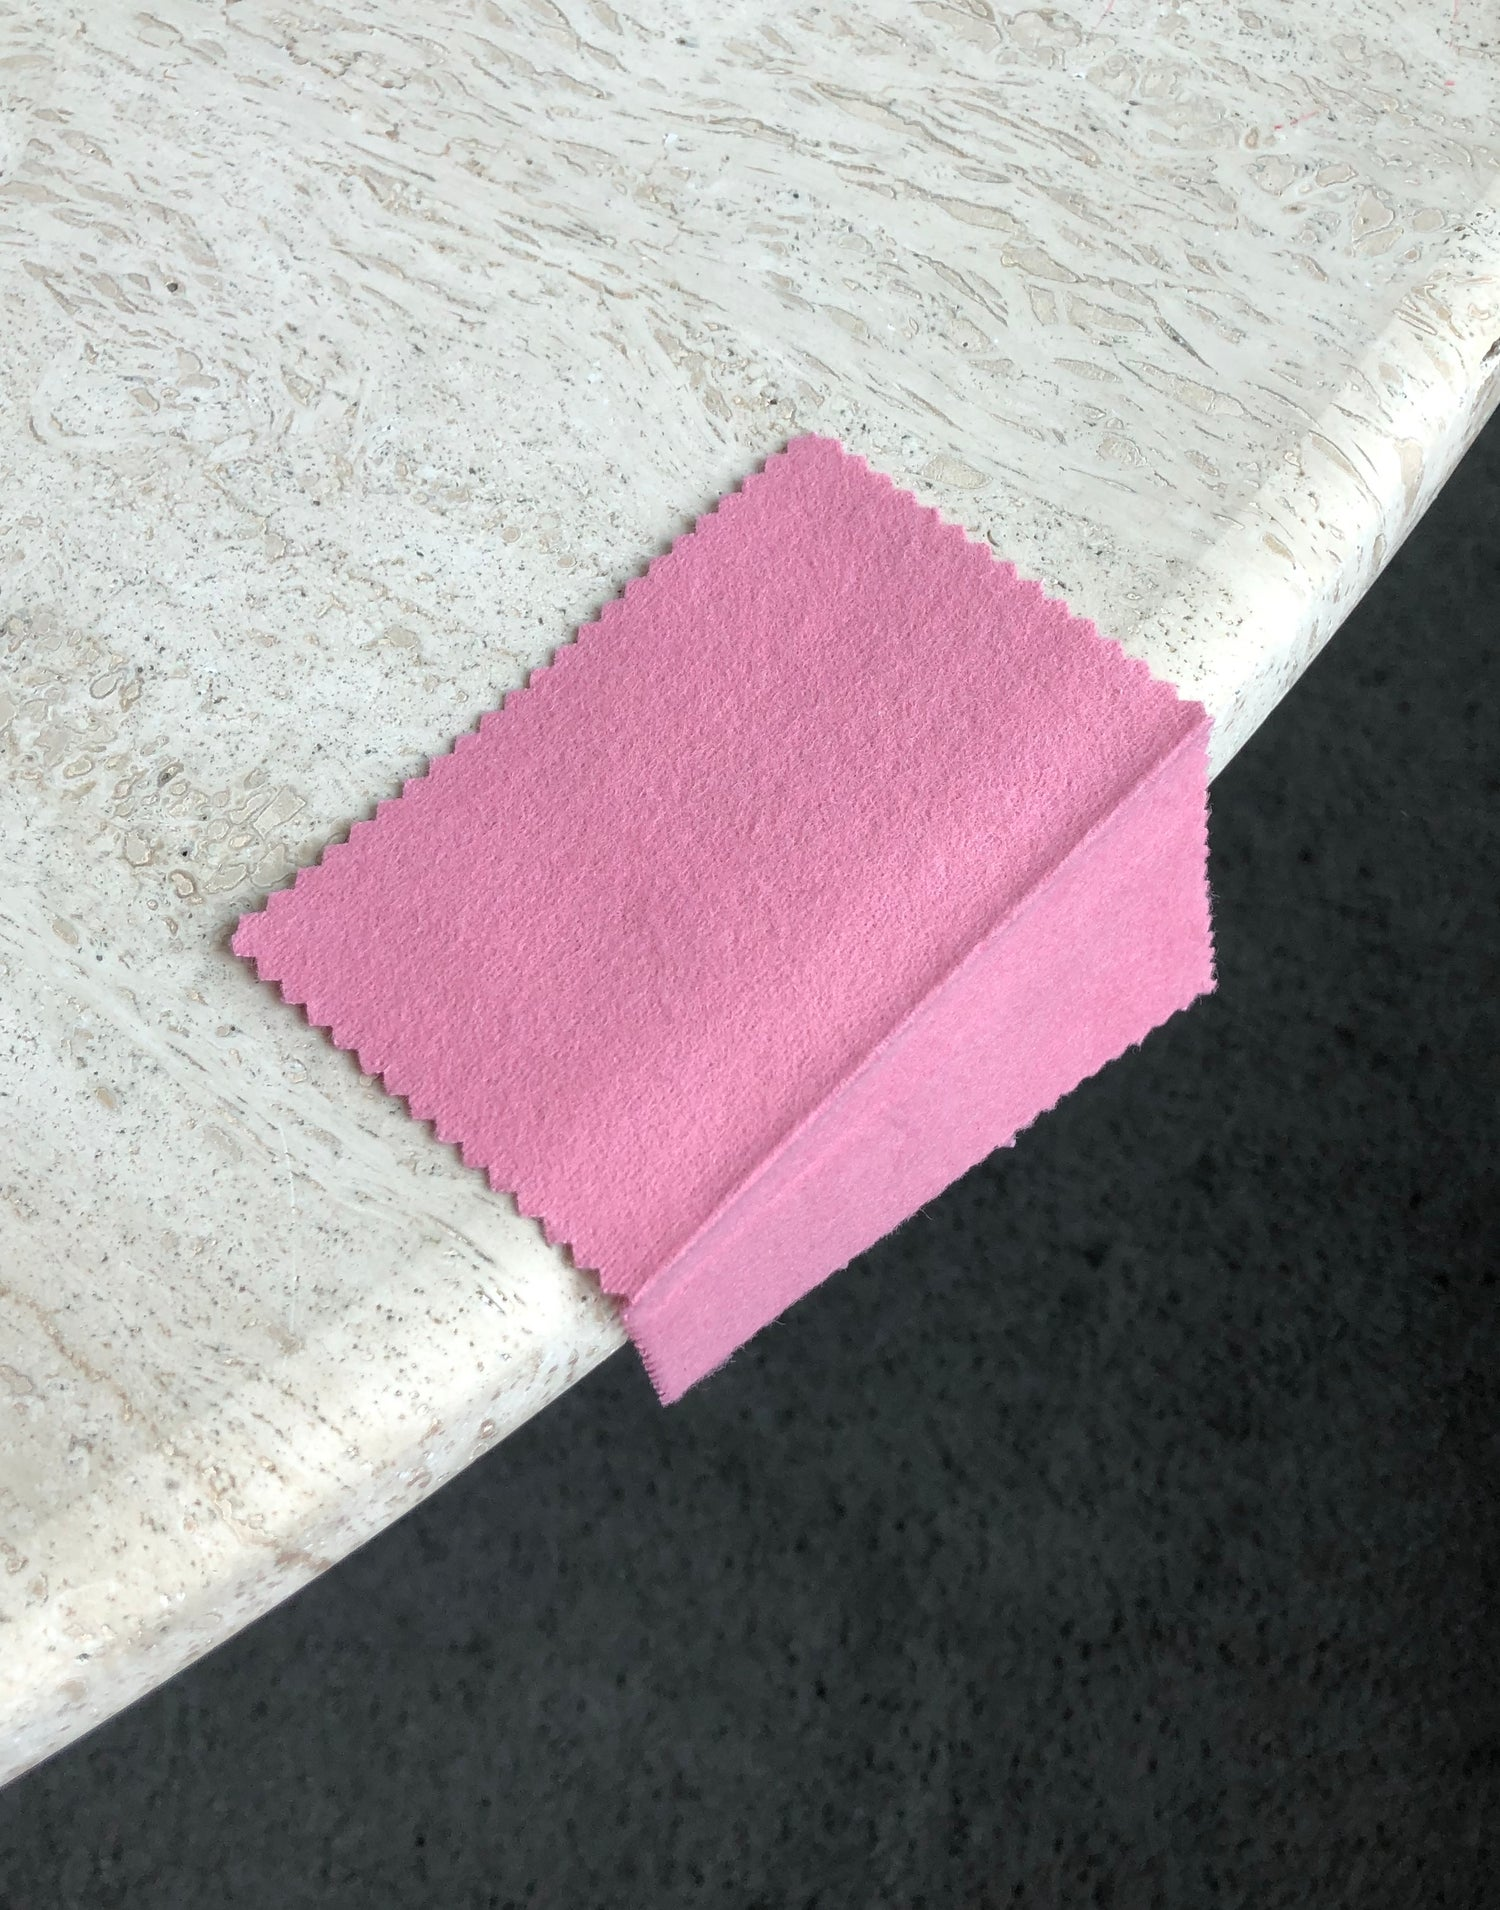 Image of Jewellery cleaning cloth